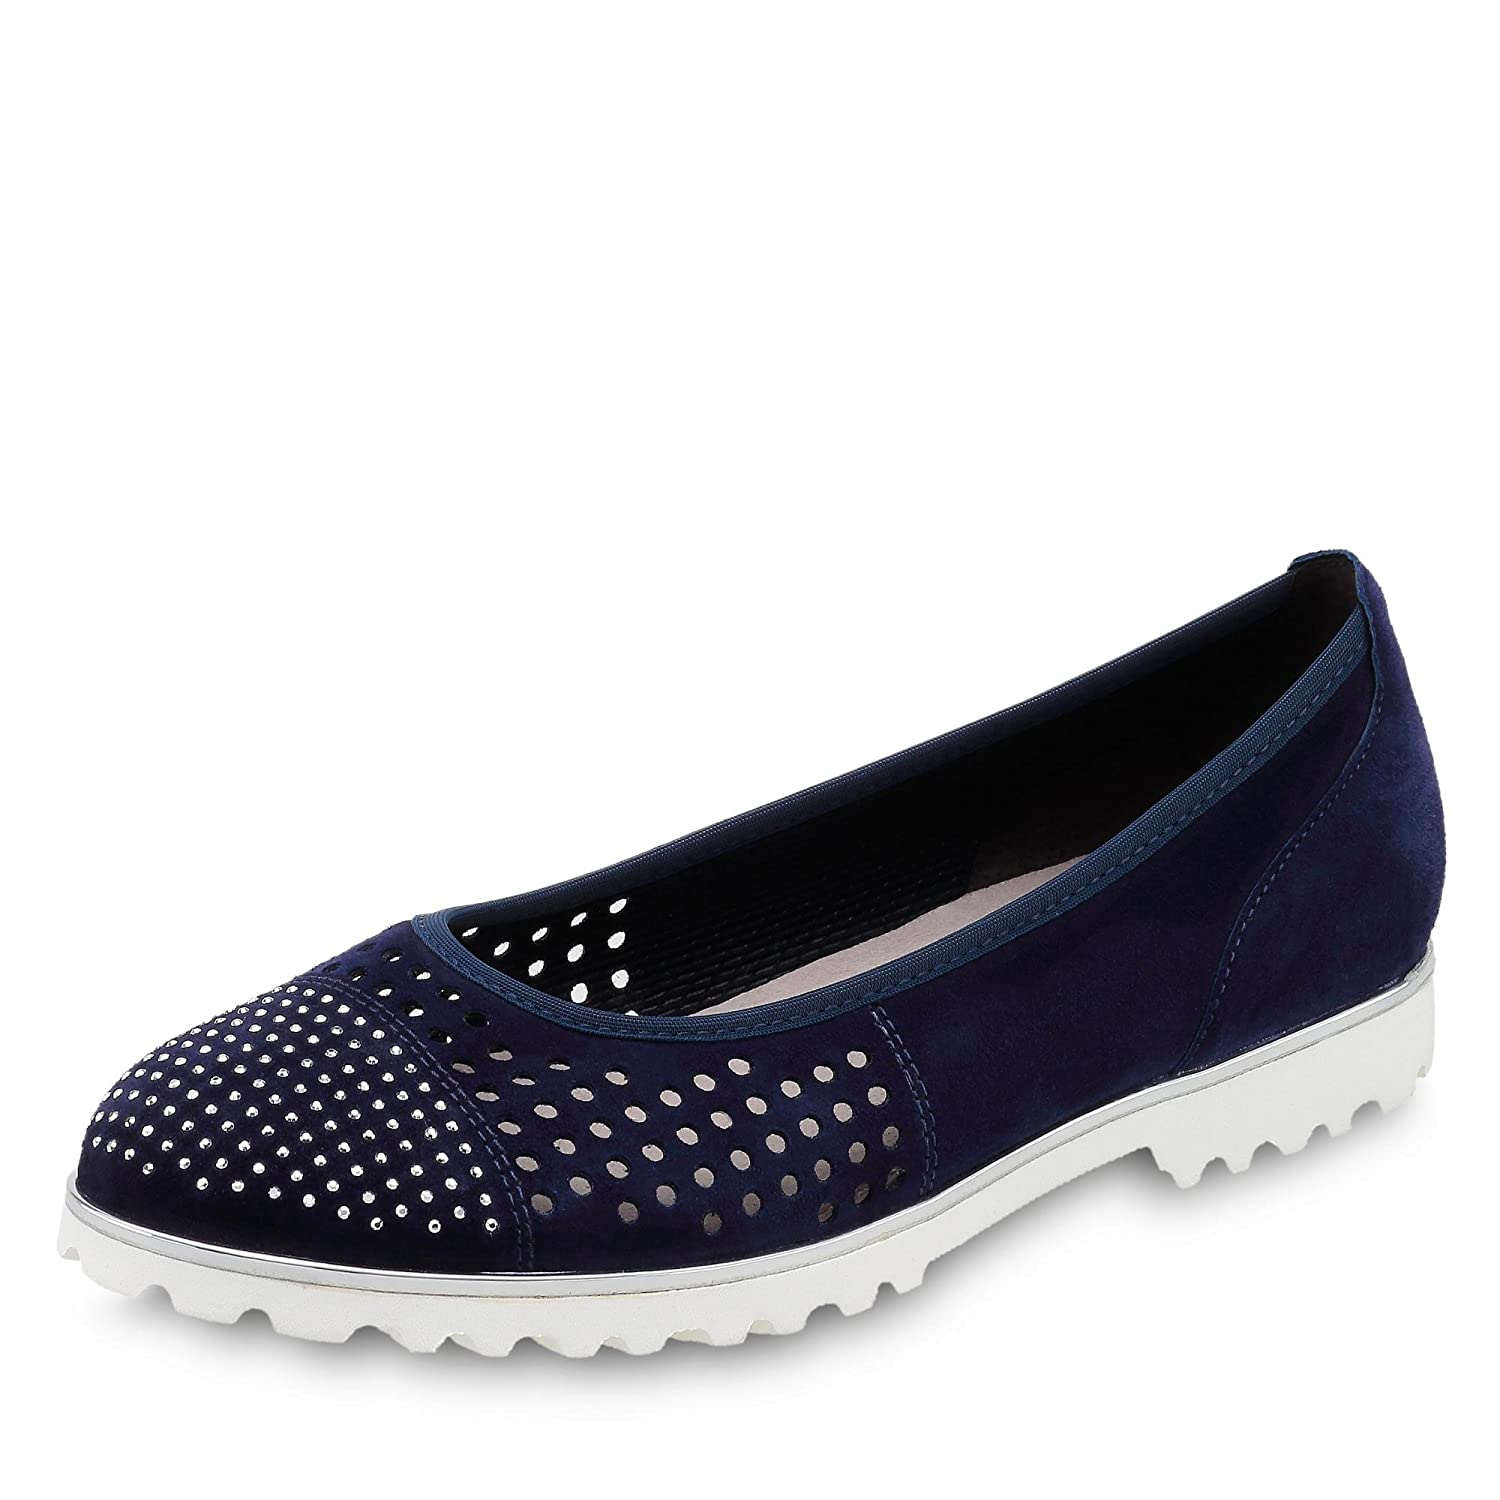 Gabor 83.102 Derbies femmes Derbies 83.102 37.5 EU|Blau 7056d5